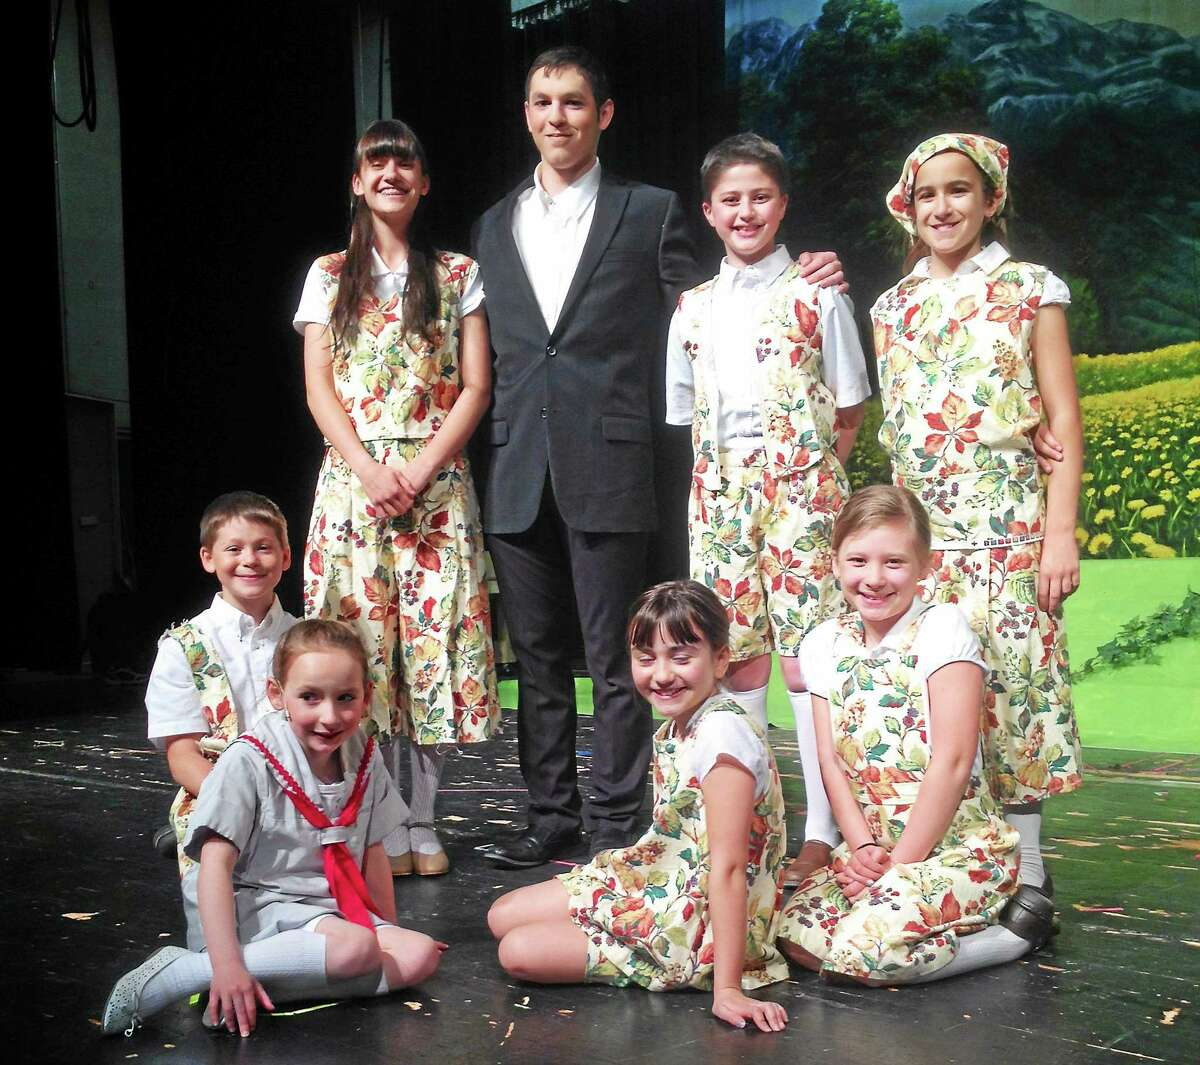 """East Hampton High School 11th-grader Sam Laraia plays Capt. von Trapp in """"The Sound of Music."""" The children staging the production, ages 5 to 15, have looked up to him for direction as a sort of father during rehearsals, he says."""